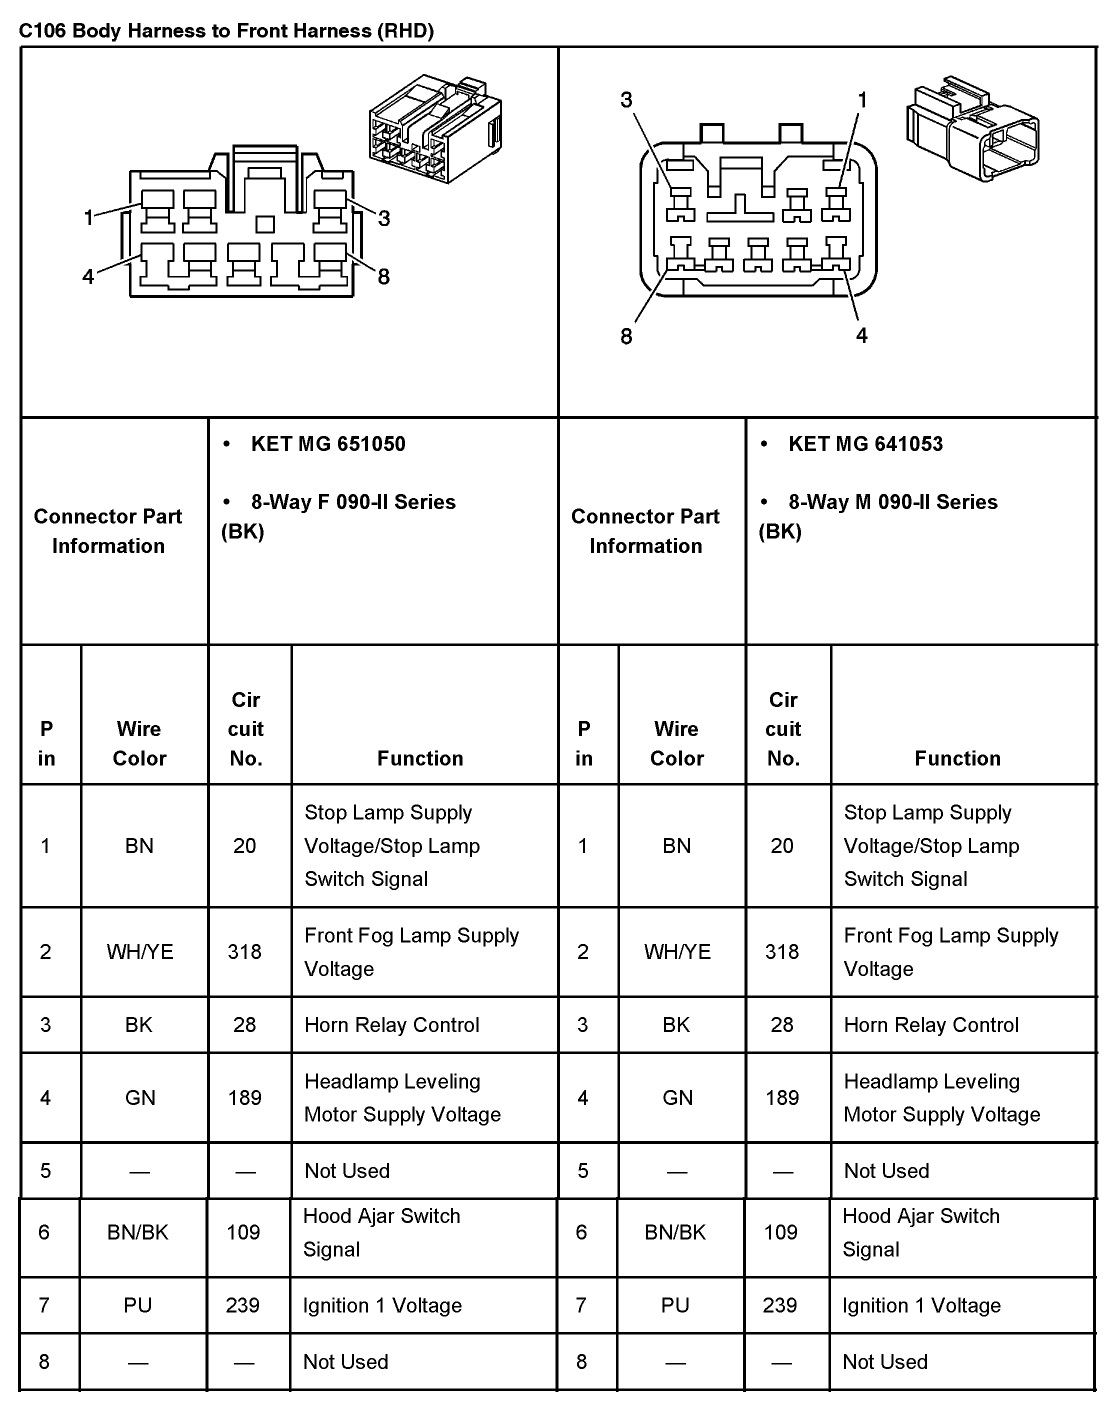 7331d1383704576 2005 aveo master connector list diagrams conn3 jpg 2008 chevy aveo fuse box diagram chevy aveo door lock diagram 2009 Chevy Aveo Fuse Box at virtualis.co